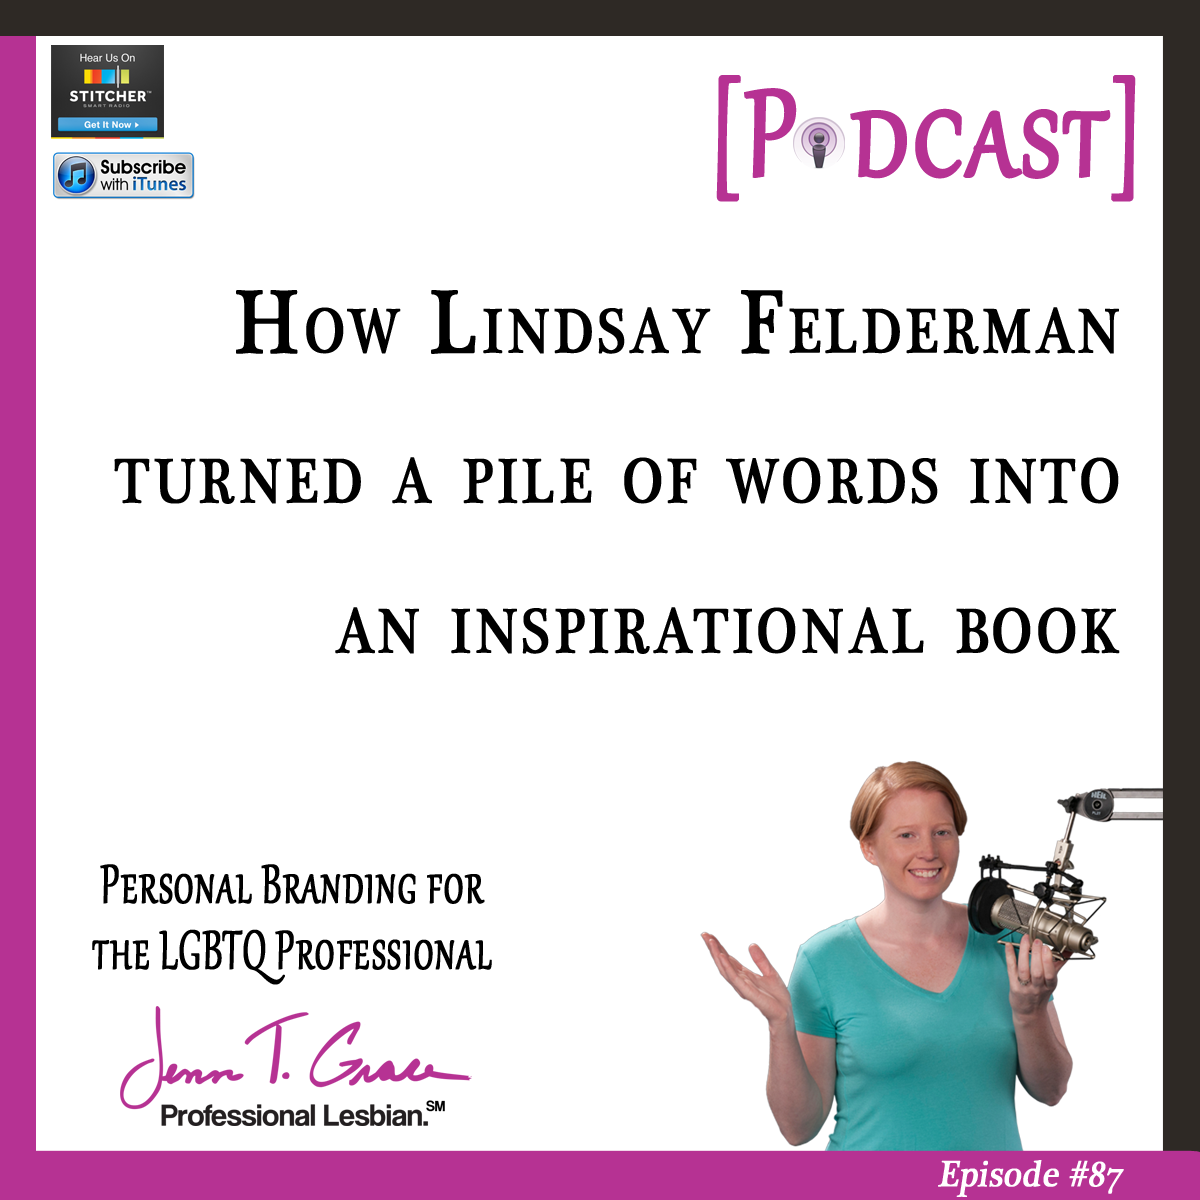 Personal Branding for the LGBTQ Professional - #87: How Lindsay Felderman Turned a Pile of Words Into an Inspirational Book